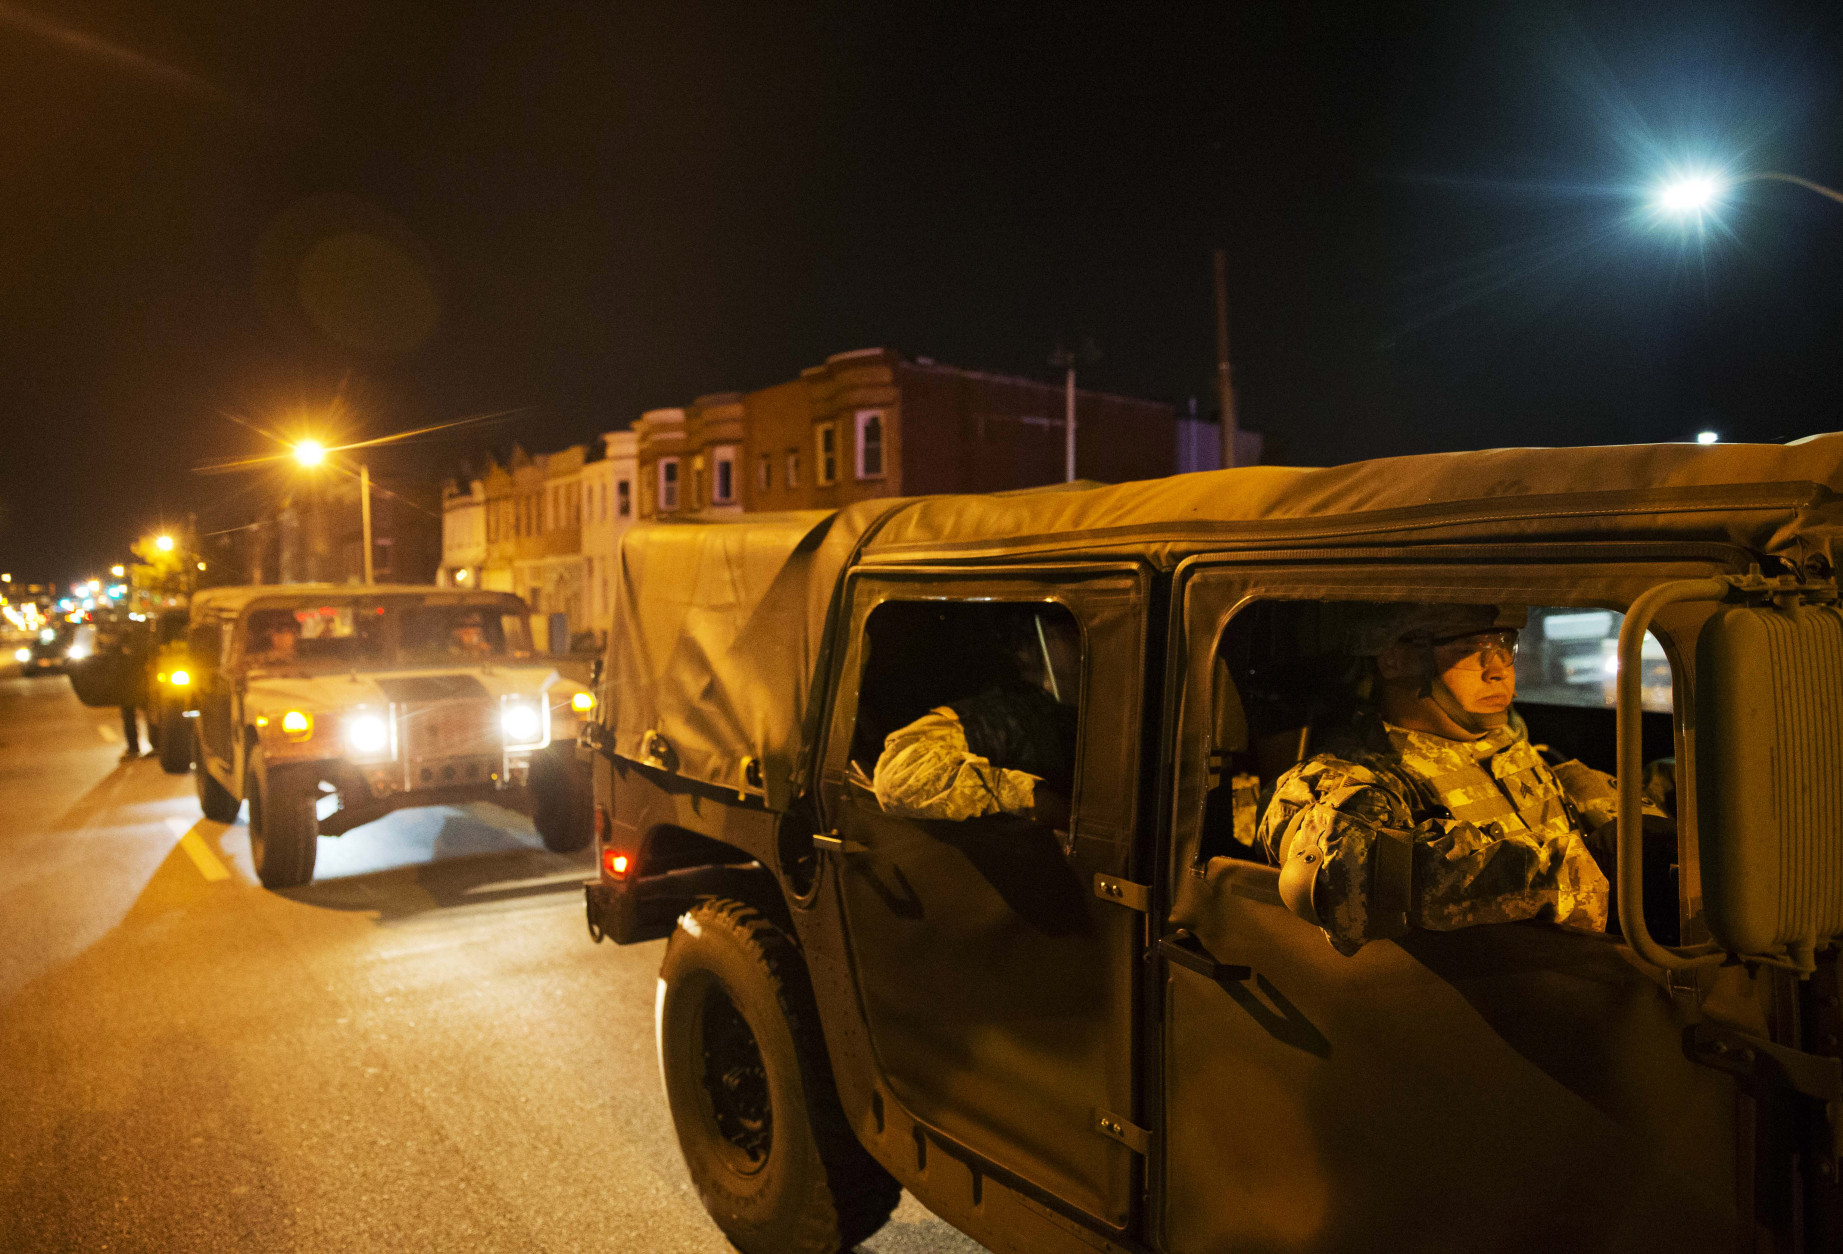 Members of the National Guard pass through the area where Monday's riots occurred following the funeral for Freddie Gray, after a 10 p.m. curfew went into effect, Tuesday, April 28, 2015, in Baltimore. (AP Photo/David Goldman)